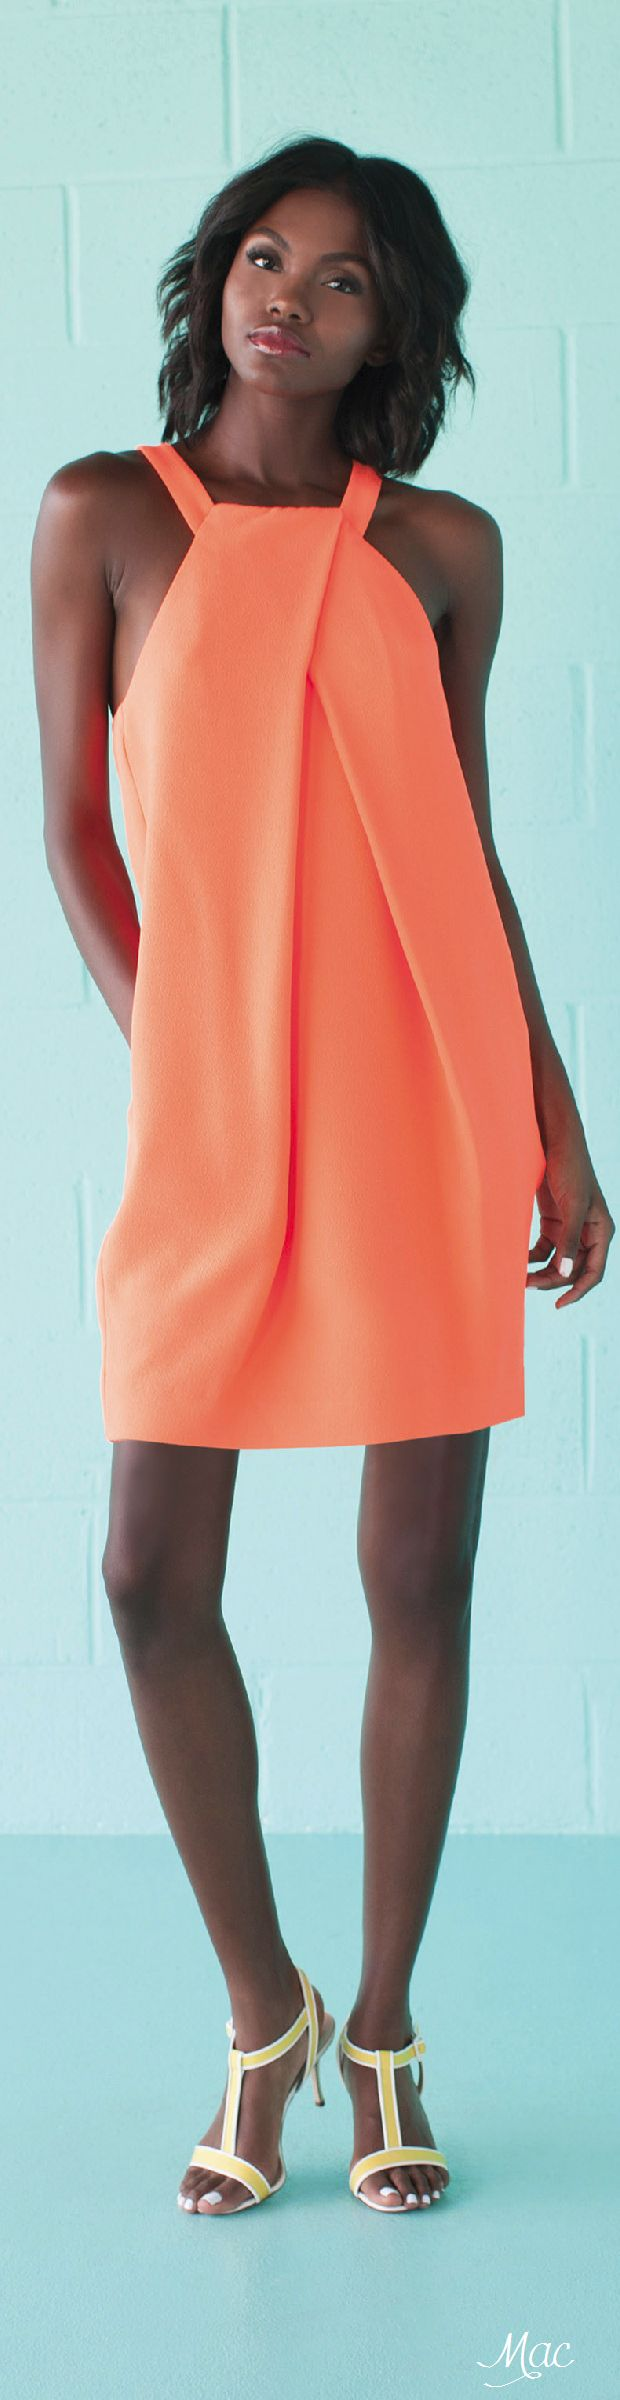 Spring 2016 Ready-to-Wear Trina Turk orange dress  women fashion outfit clothing stylish apparel @roressclothes closet ideas